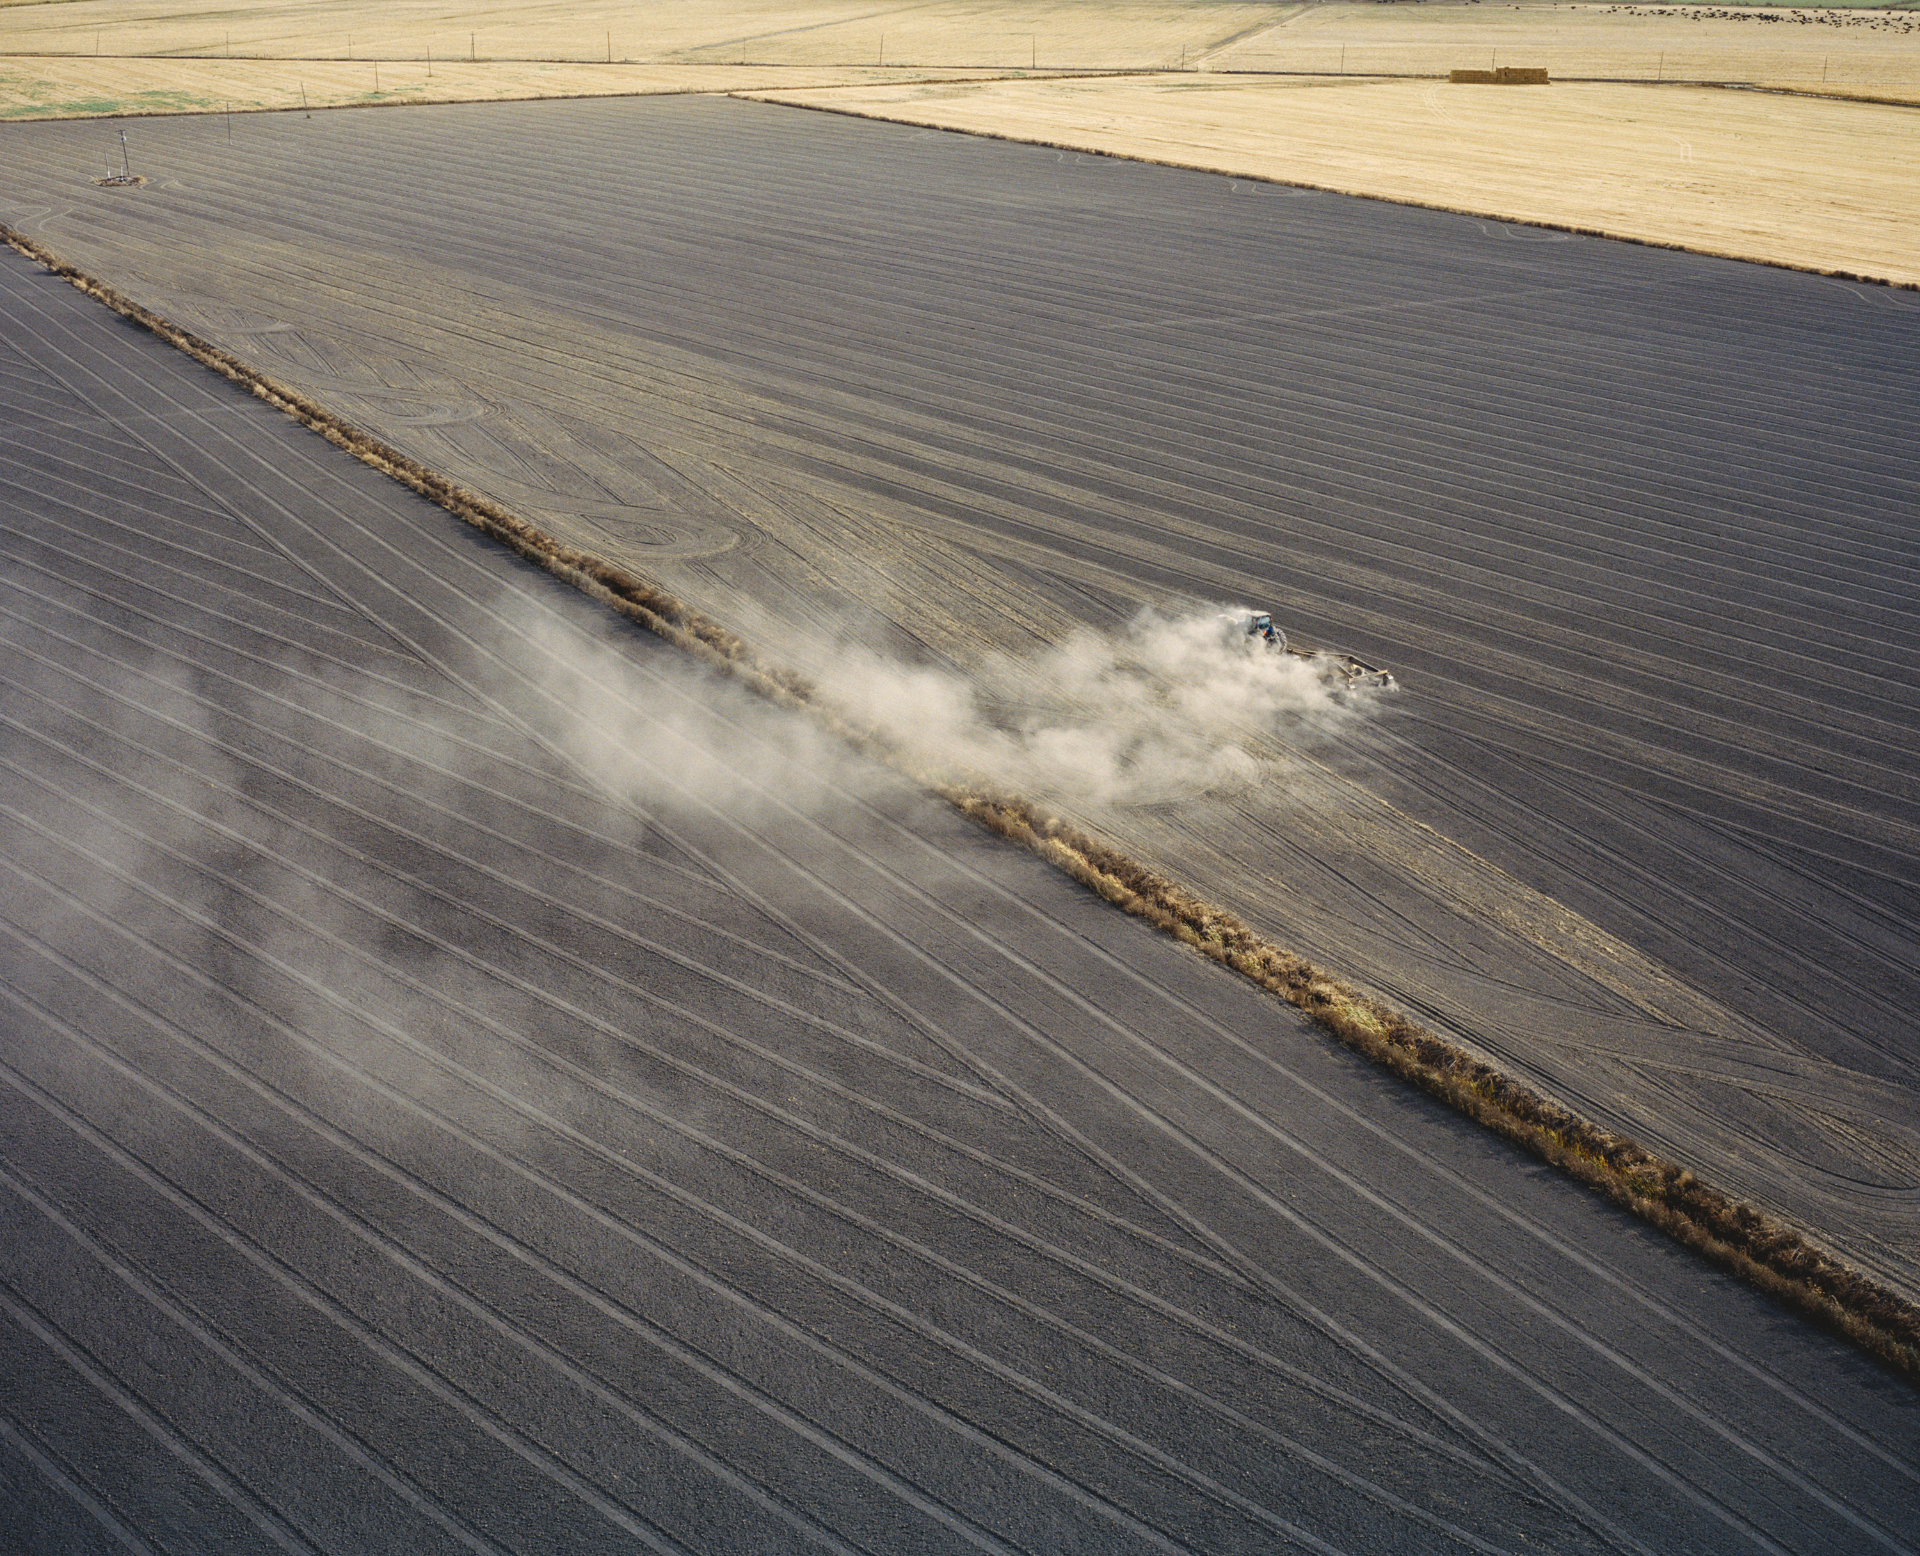 Agriculture fields near San Joaquin River. Central Valley, California, USA, 2015.